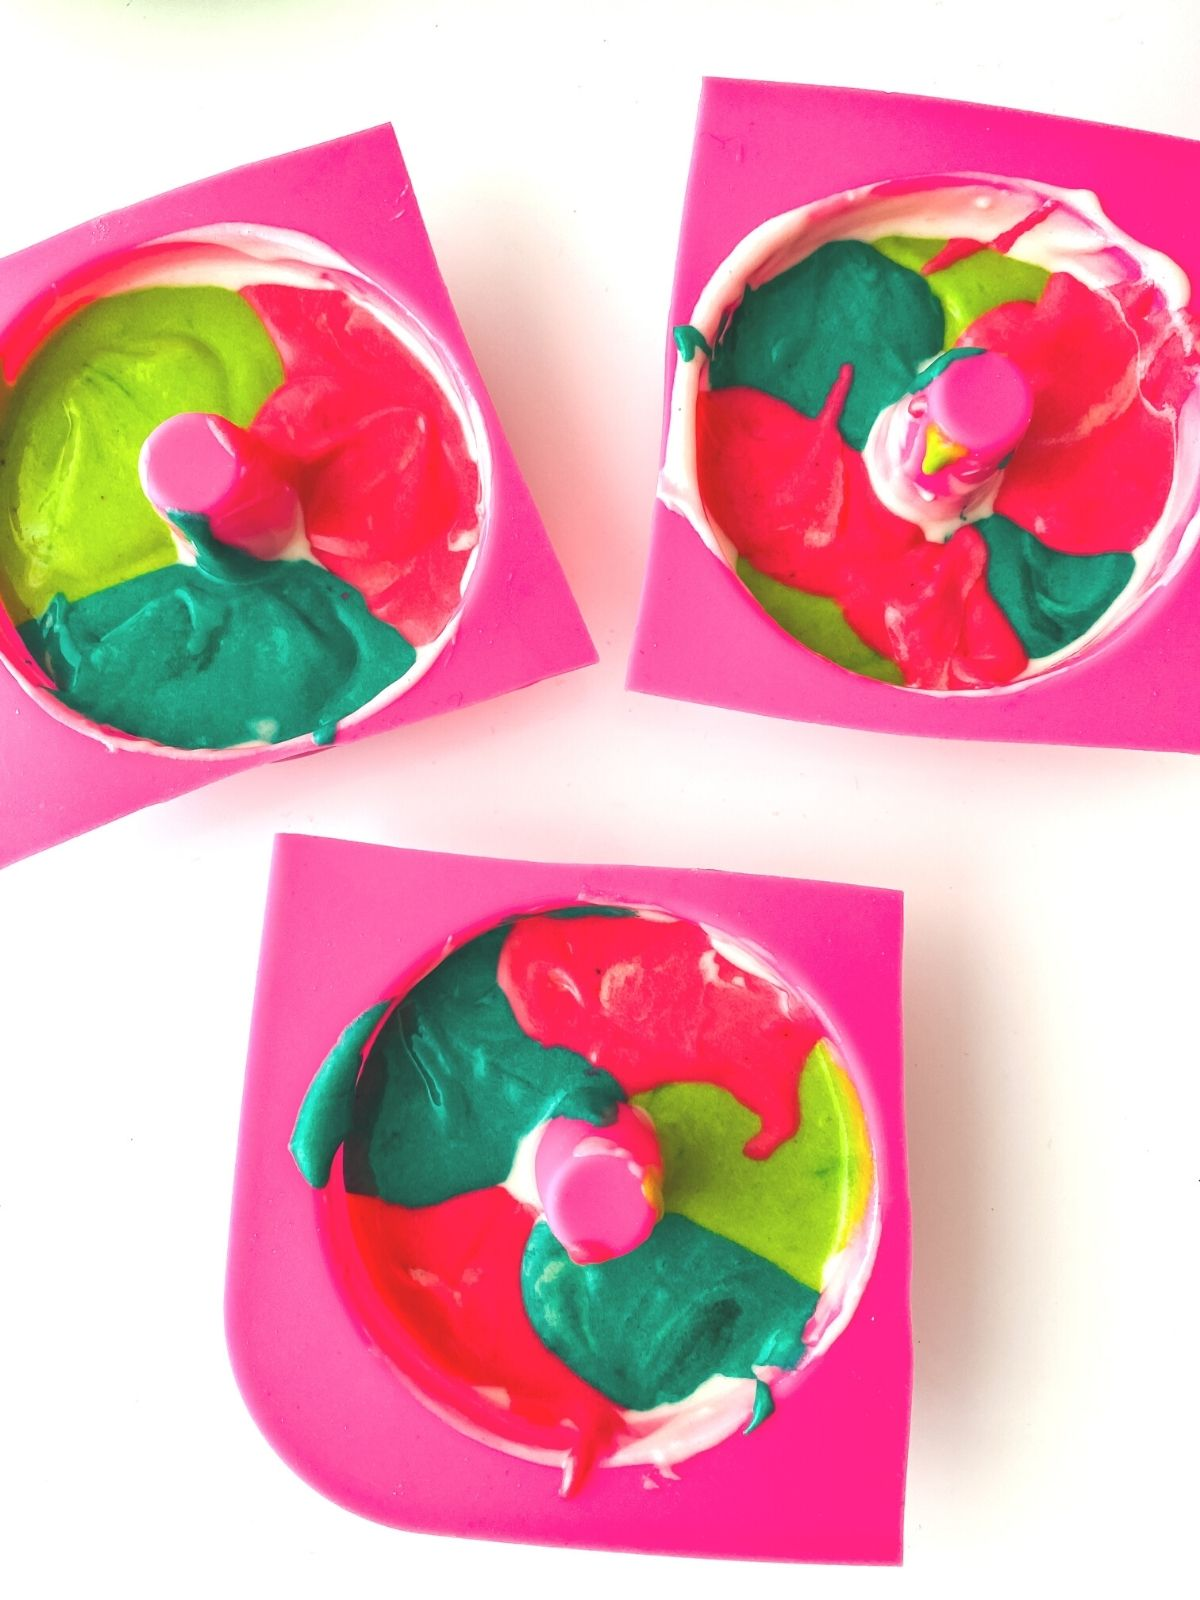 colored donut batter piped into pink silicon donut molds